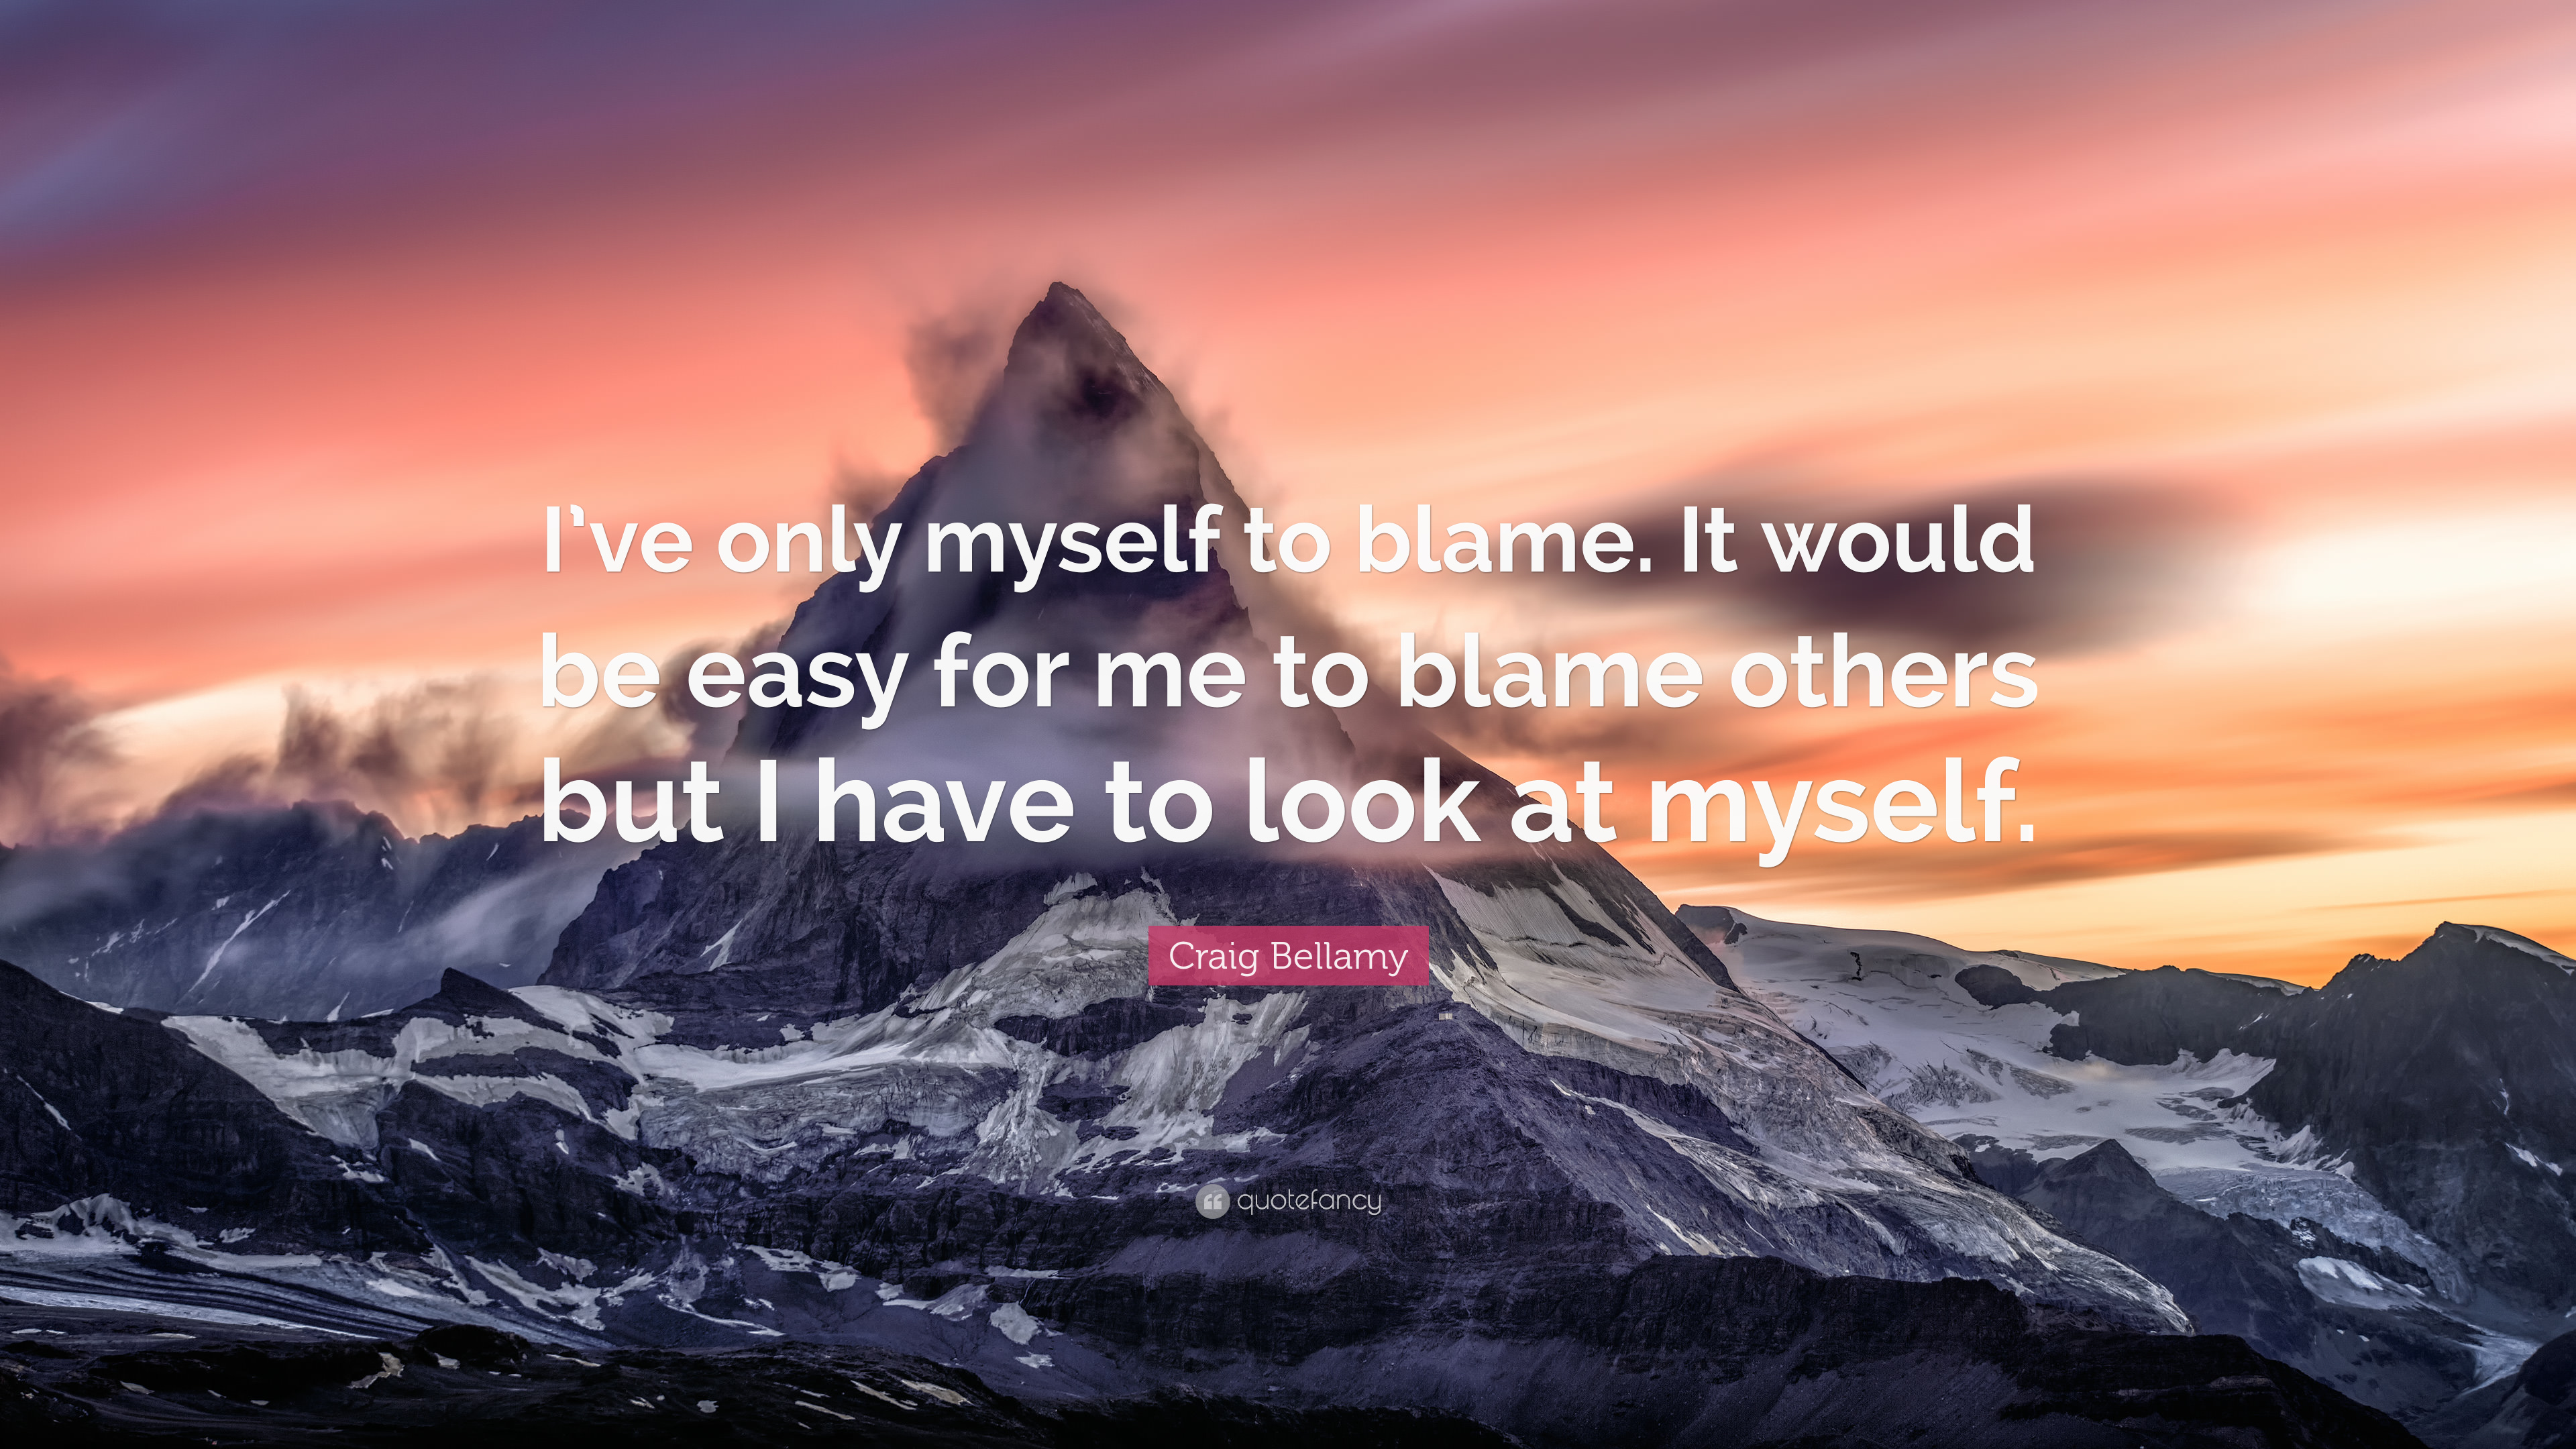 Craig Bellamy Quote I Ve Only Myself To Blame It Would Be Easy For Me To Blame Others But I Have To Look At Myself 7 Wallpapers Quotefancy